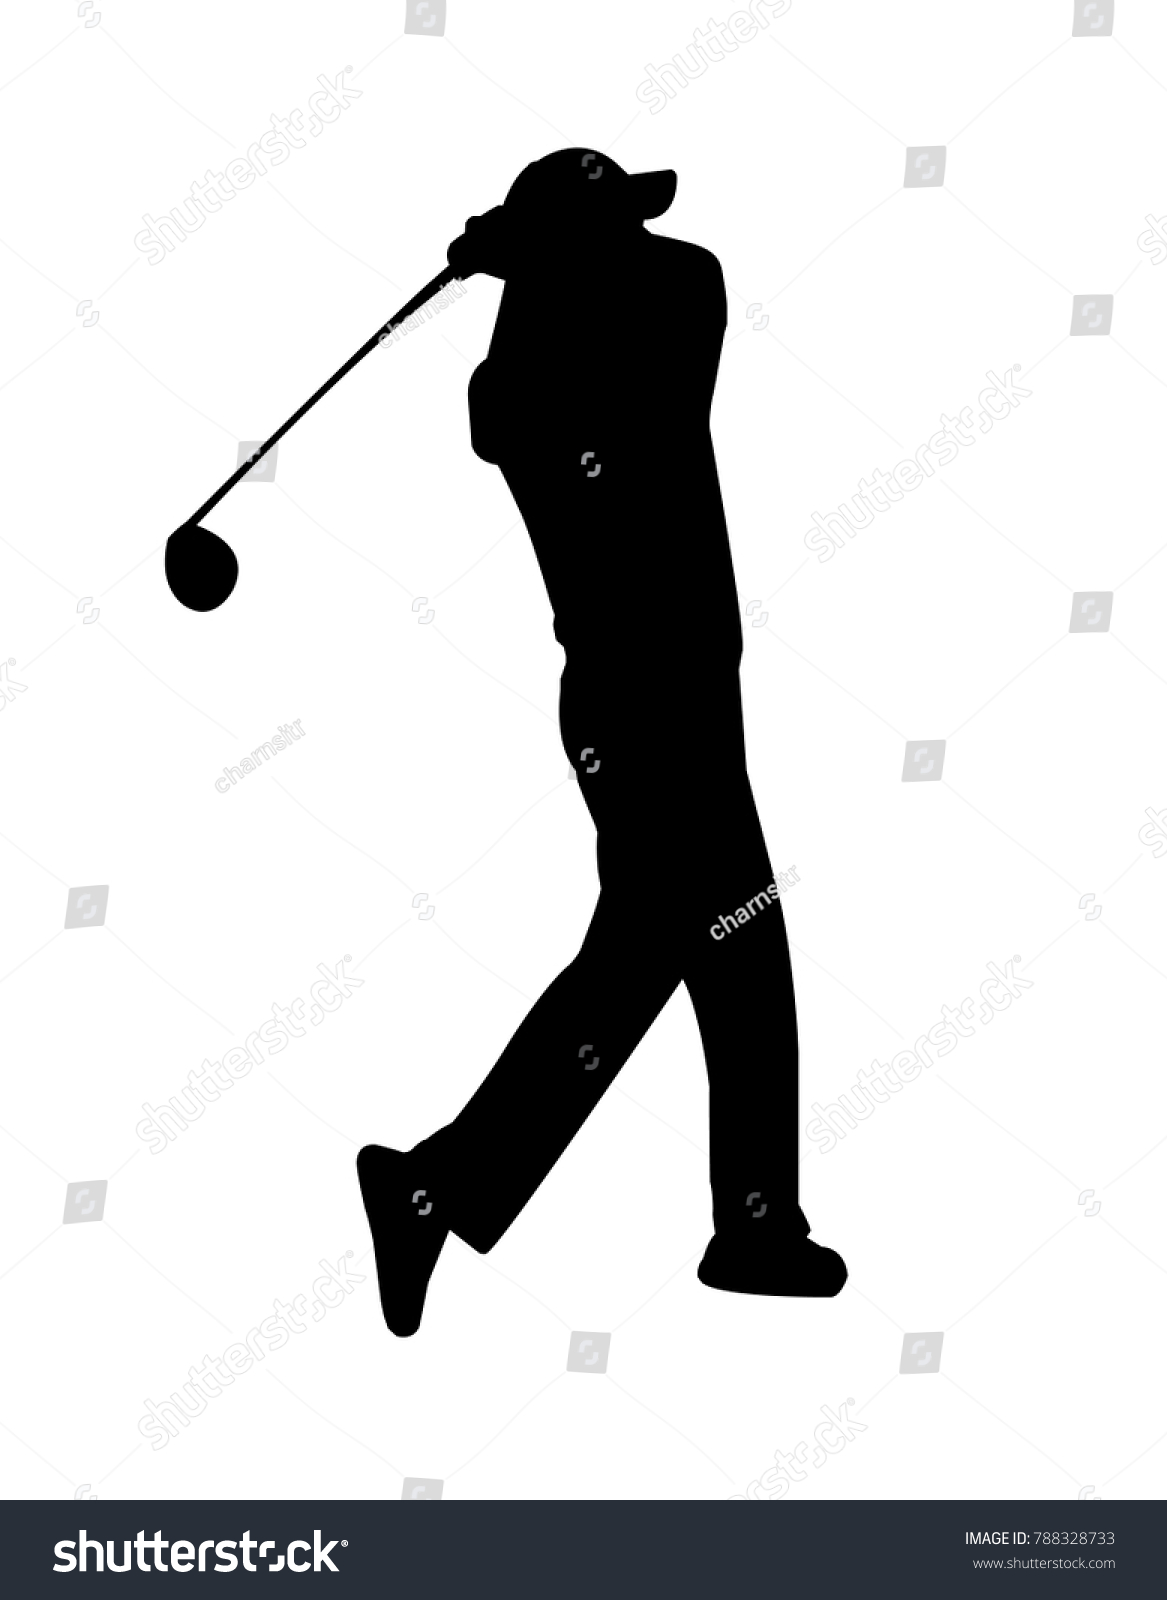 vector of silhouette golfer swing the club